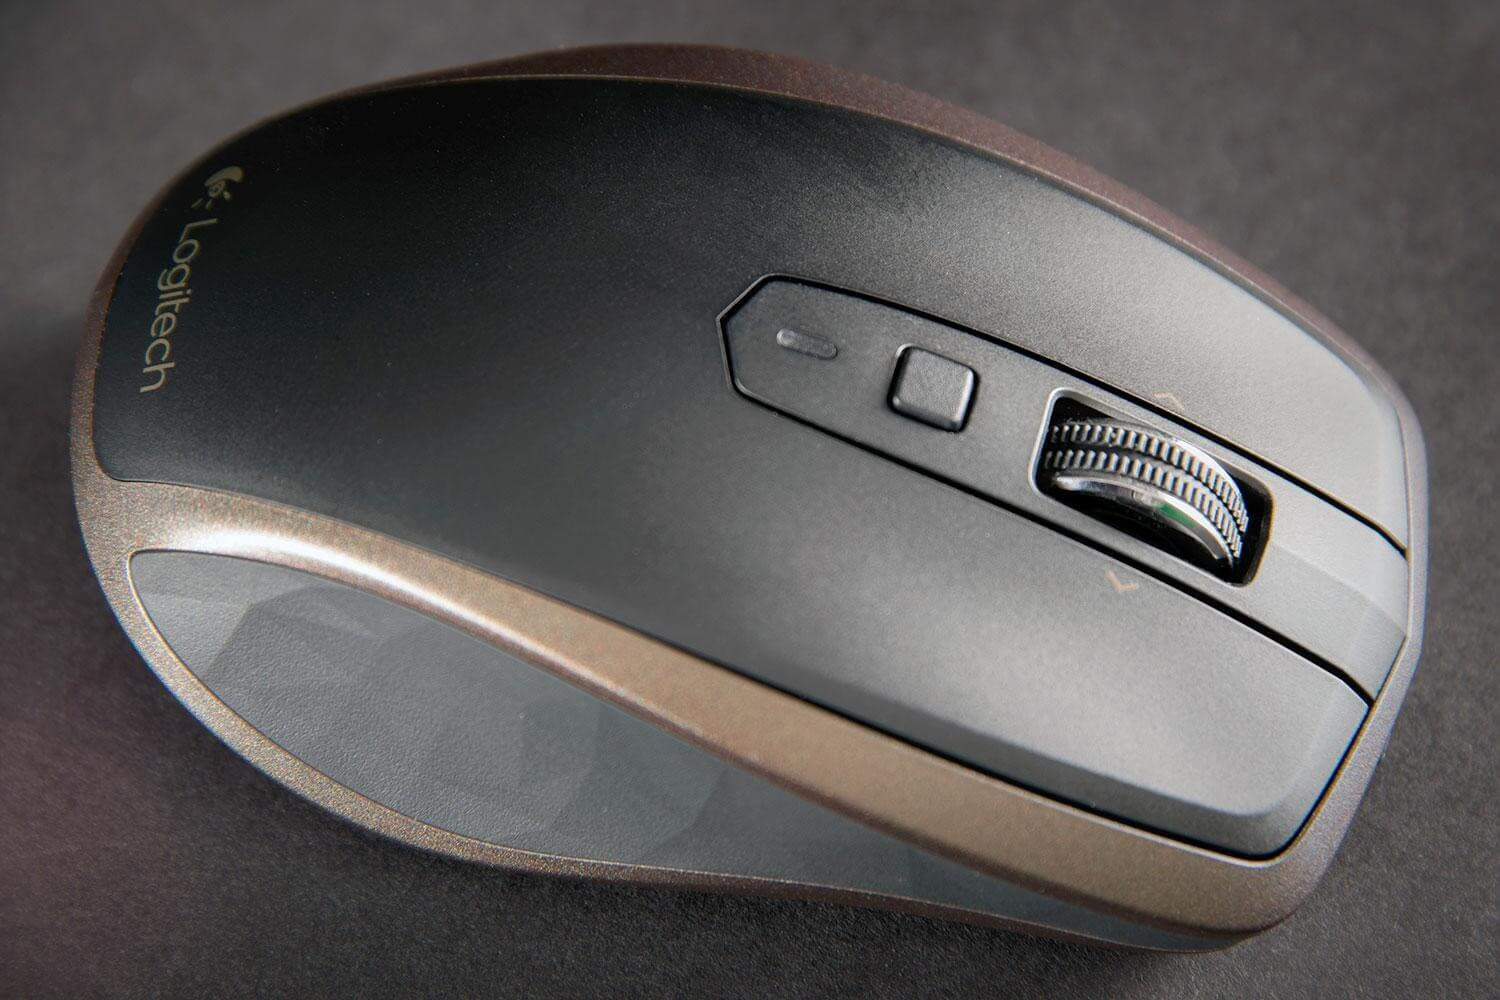 logitech mx anywhere 2 top 1500x1000 - Review: Mouse Logitech MX Anywhere 2